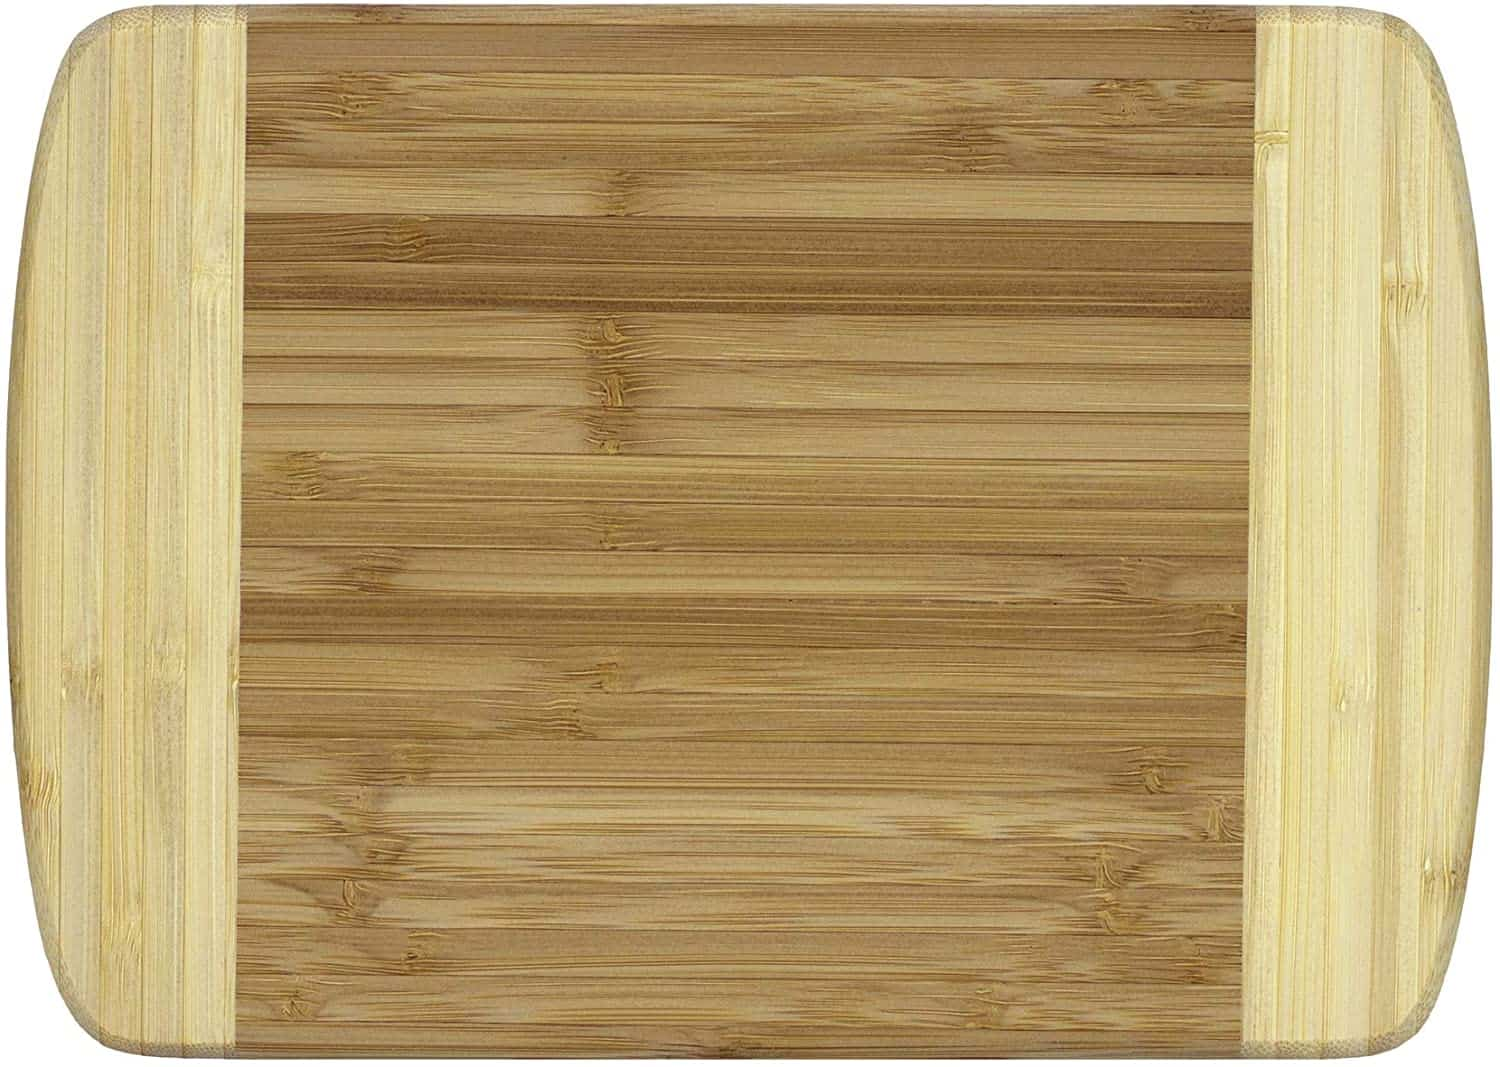 Totally Bamboo Hana Cutting Board